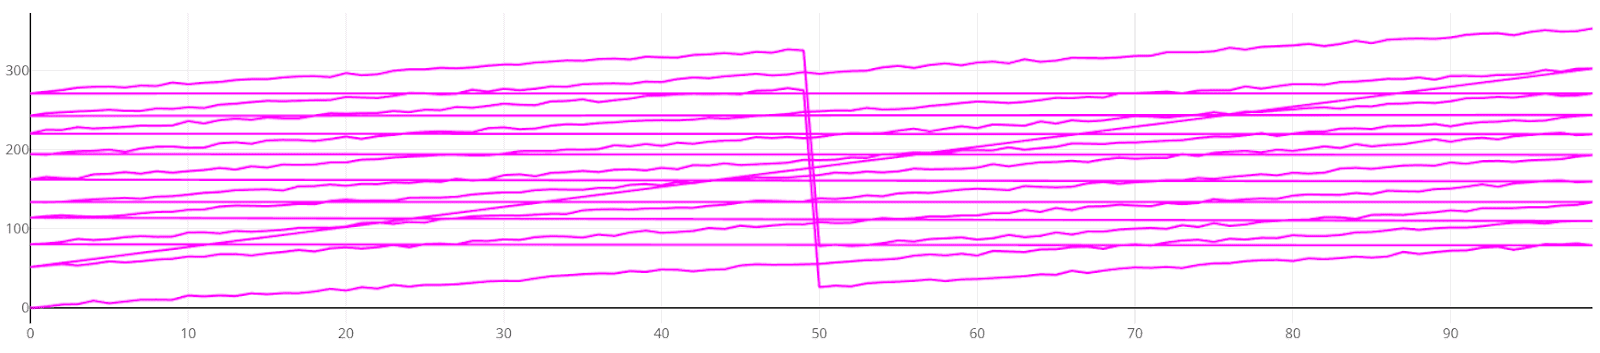 How to Make Plotly Faster with Many Traces? ~ Random Problems